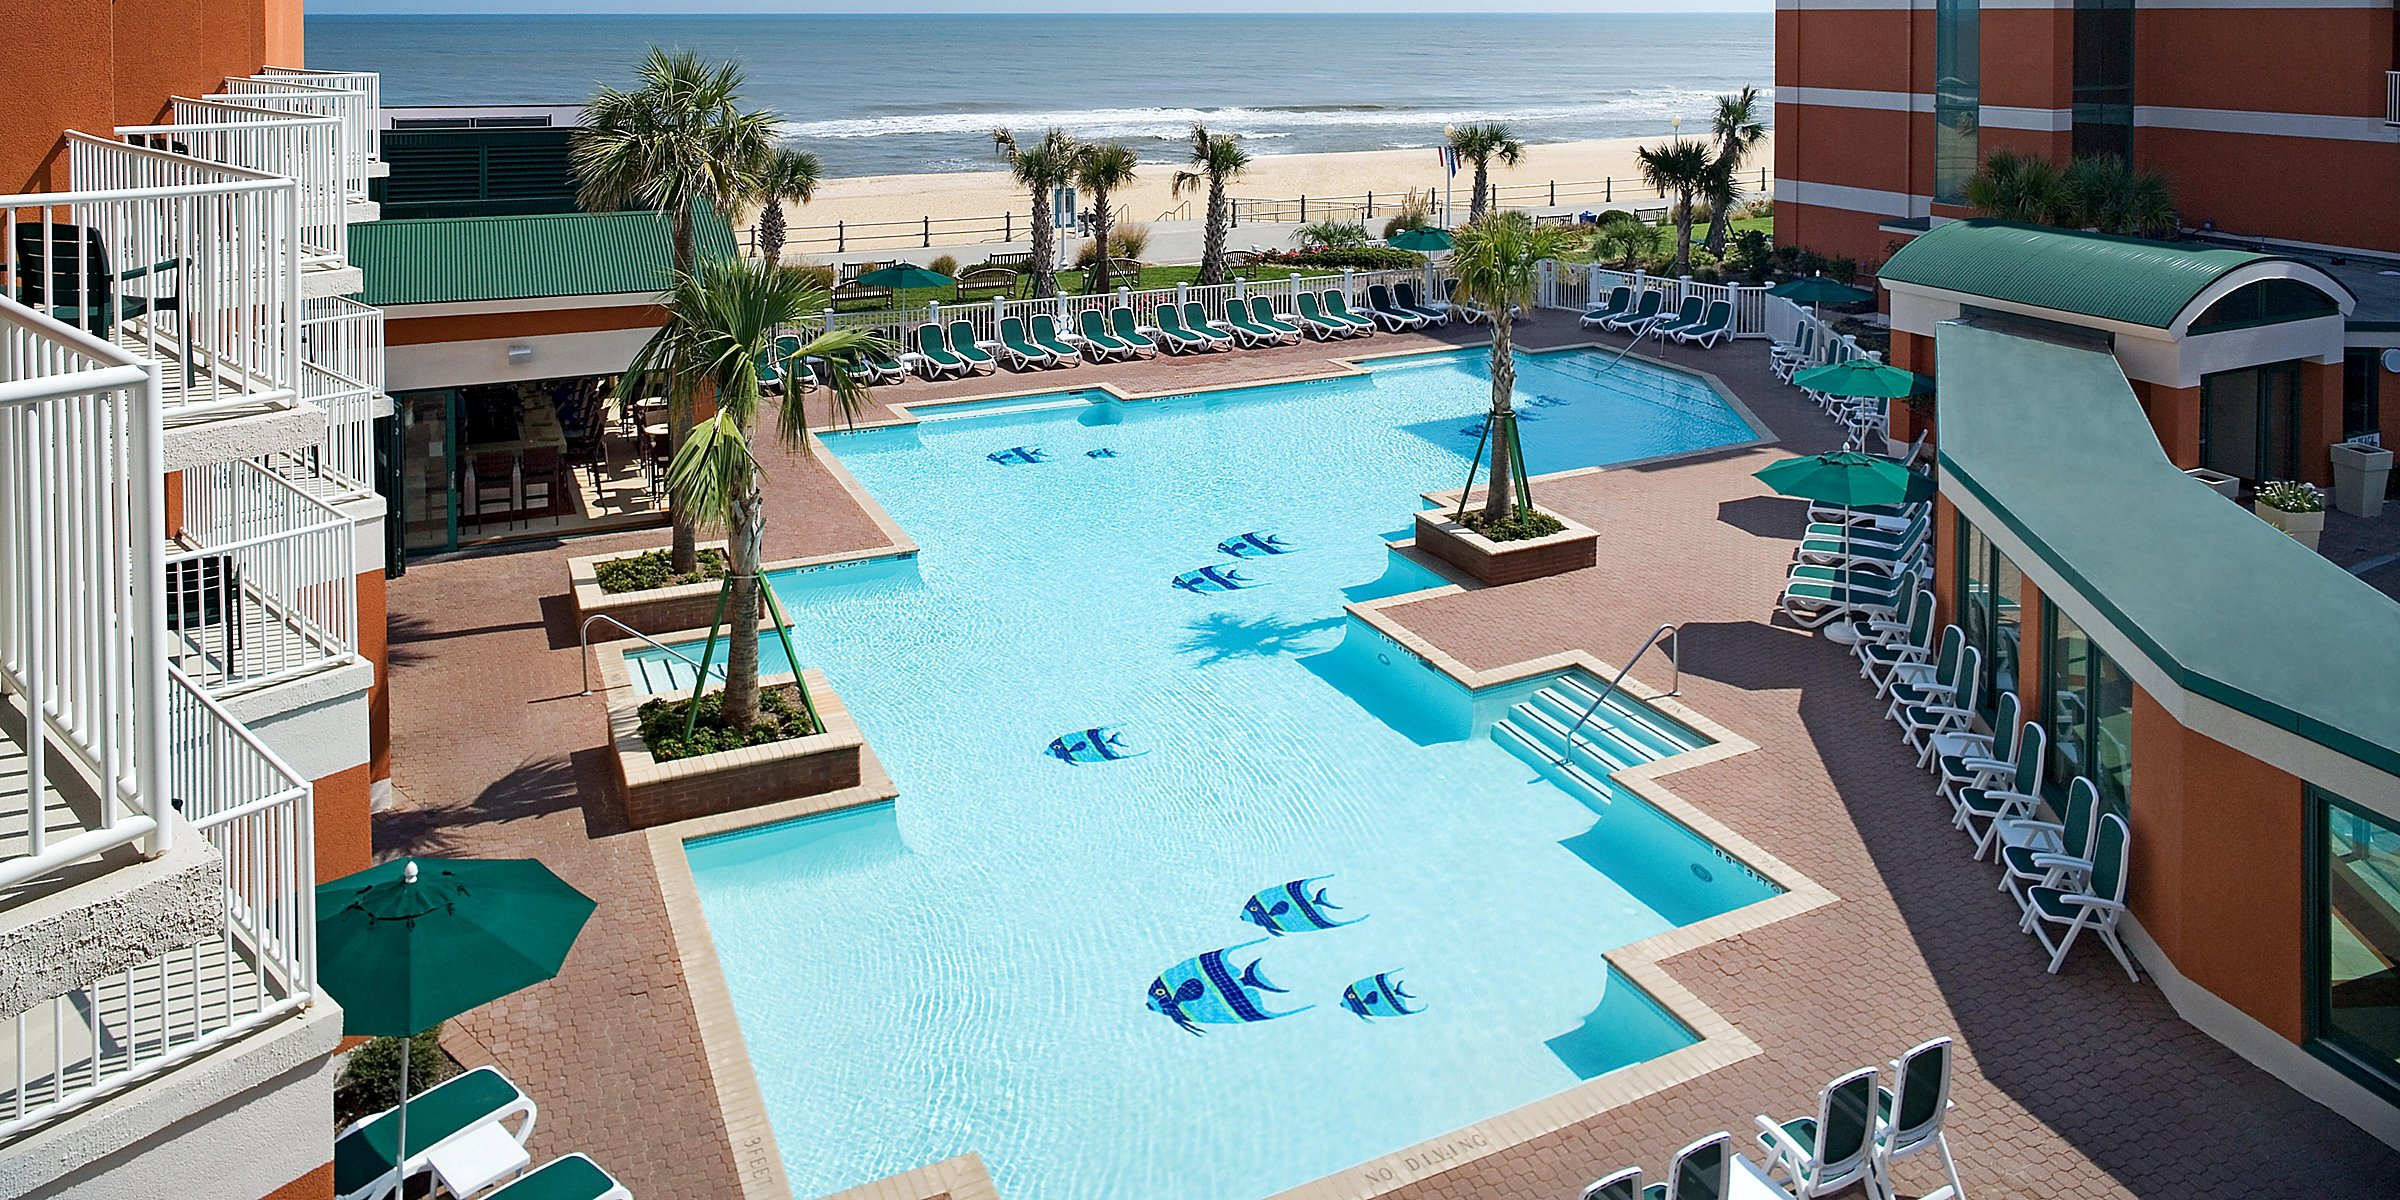 North Virginia Beach Boardwalk Hotels